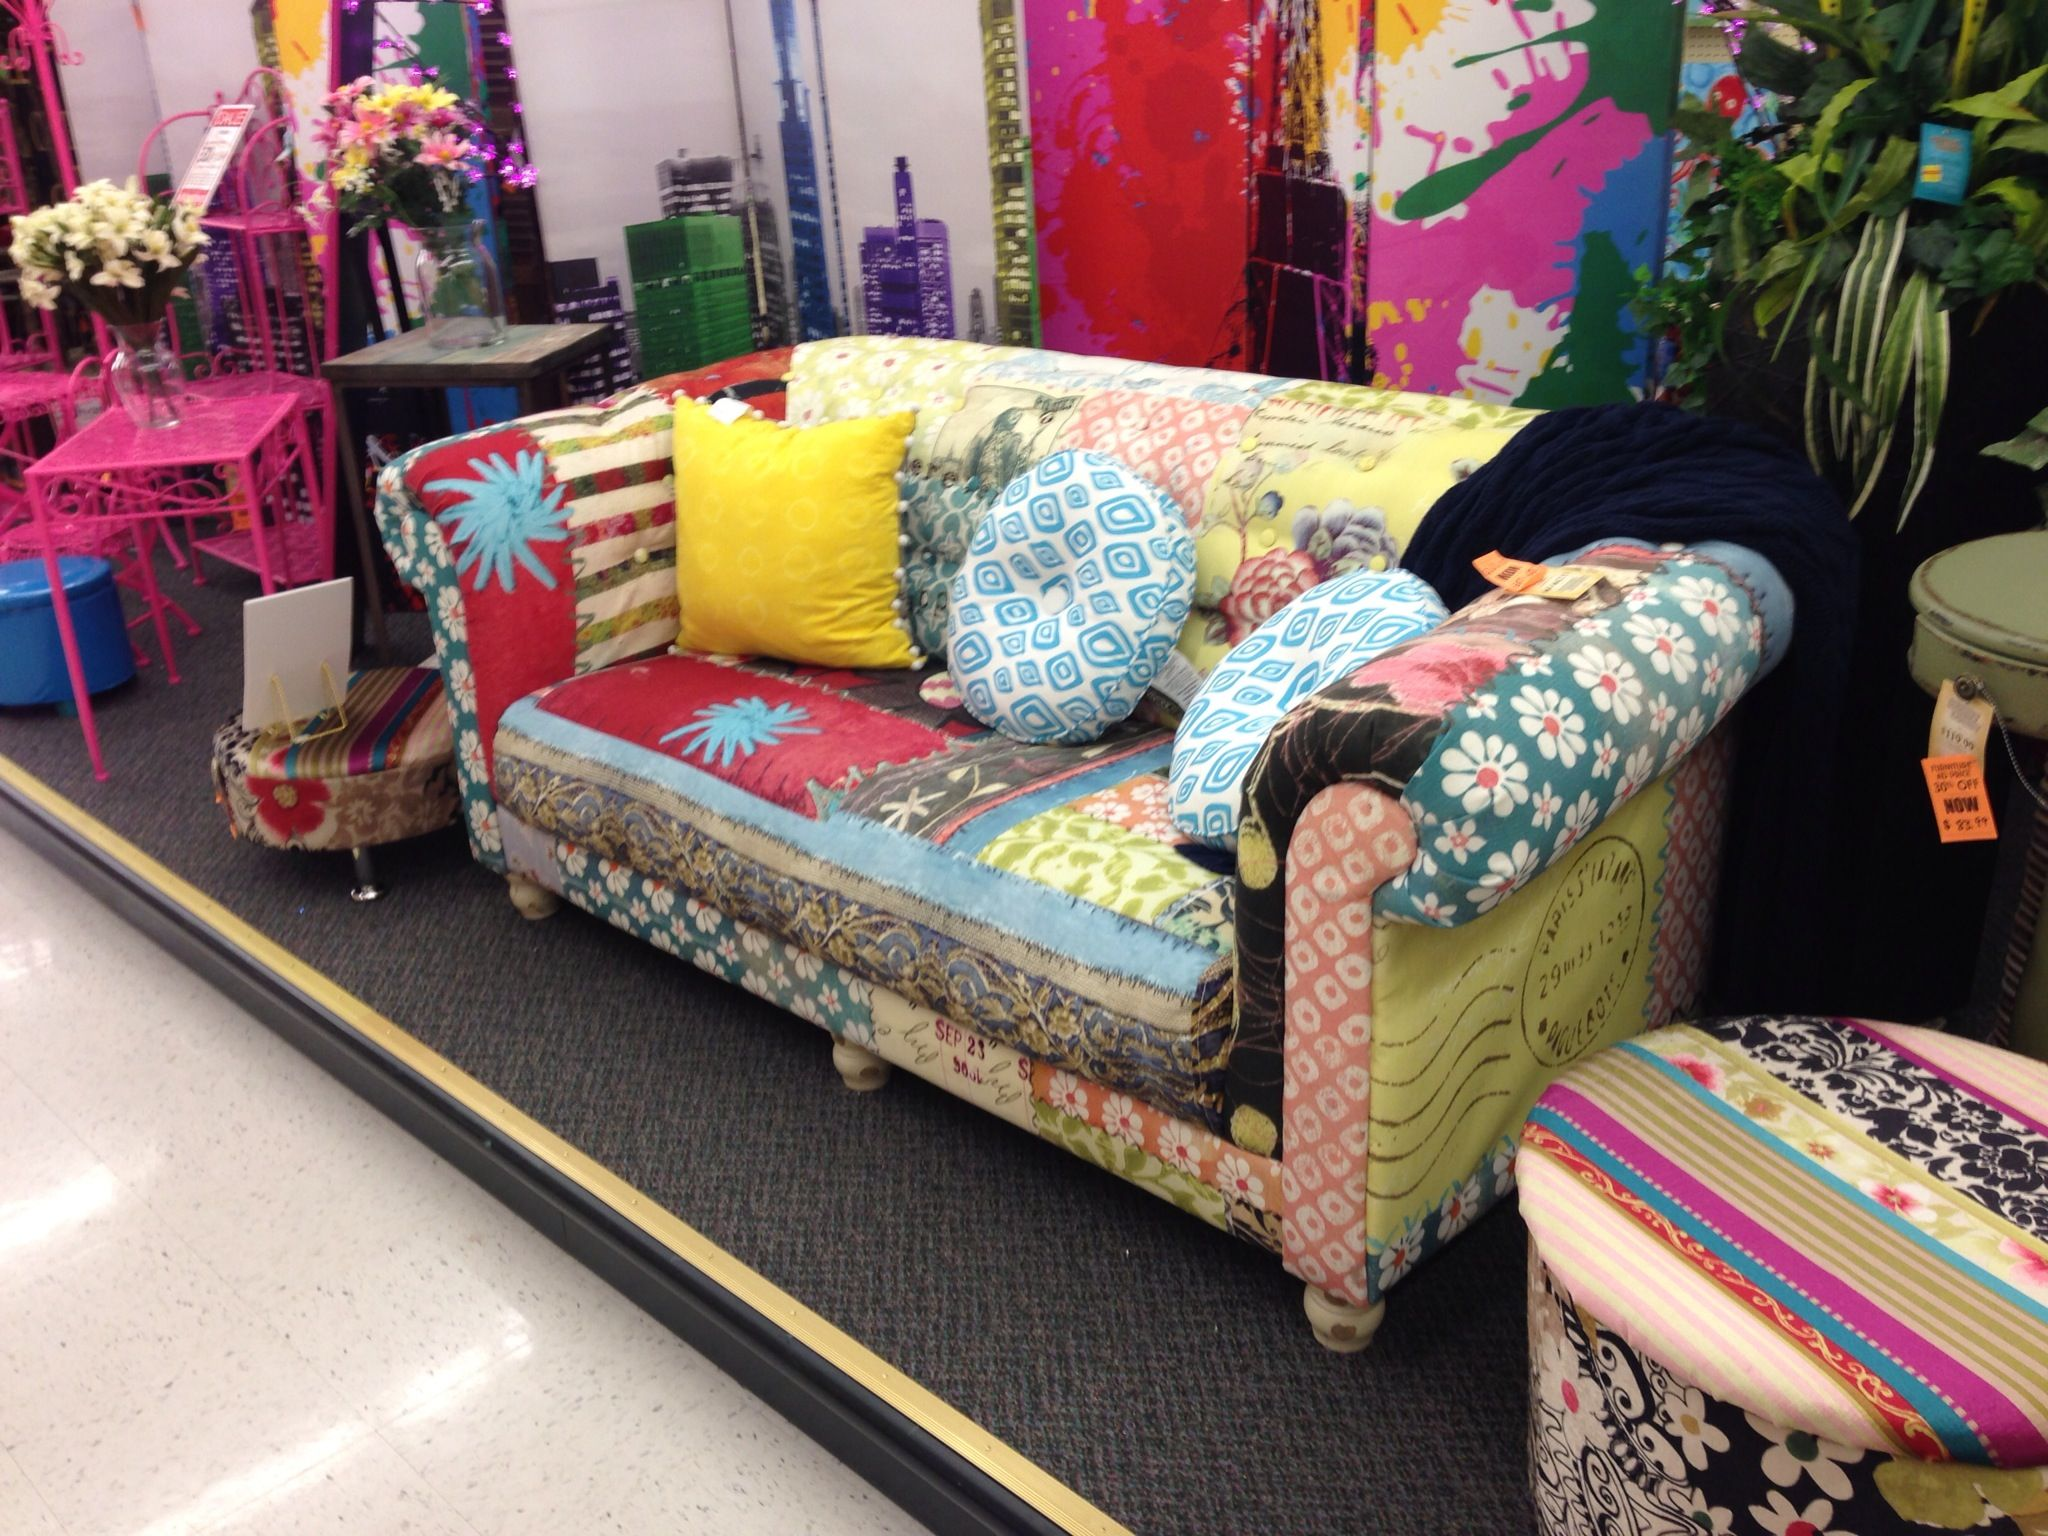 Multicolored Couch From Hobby Lobby Maybe If I Keep The Couch A